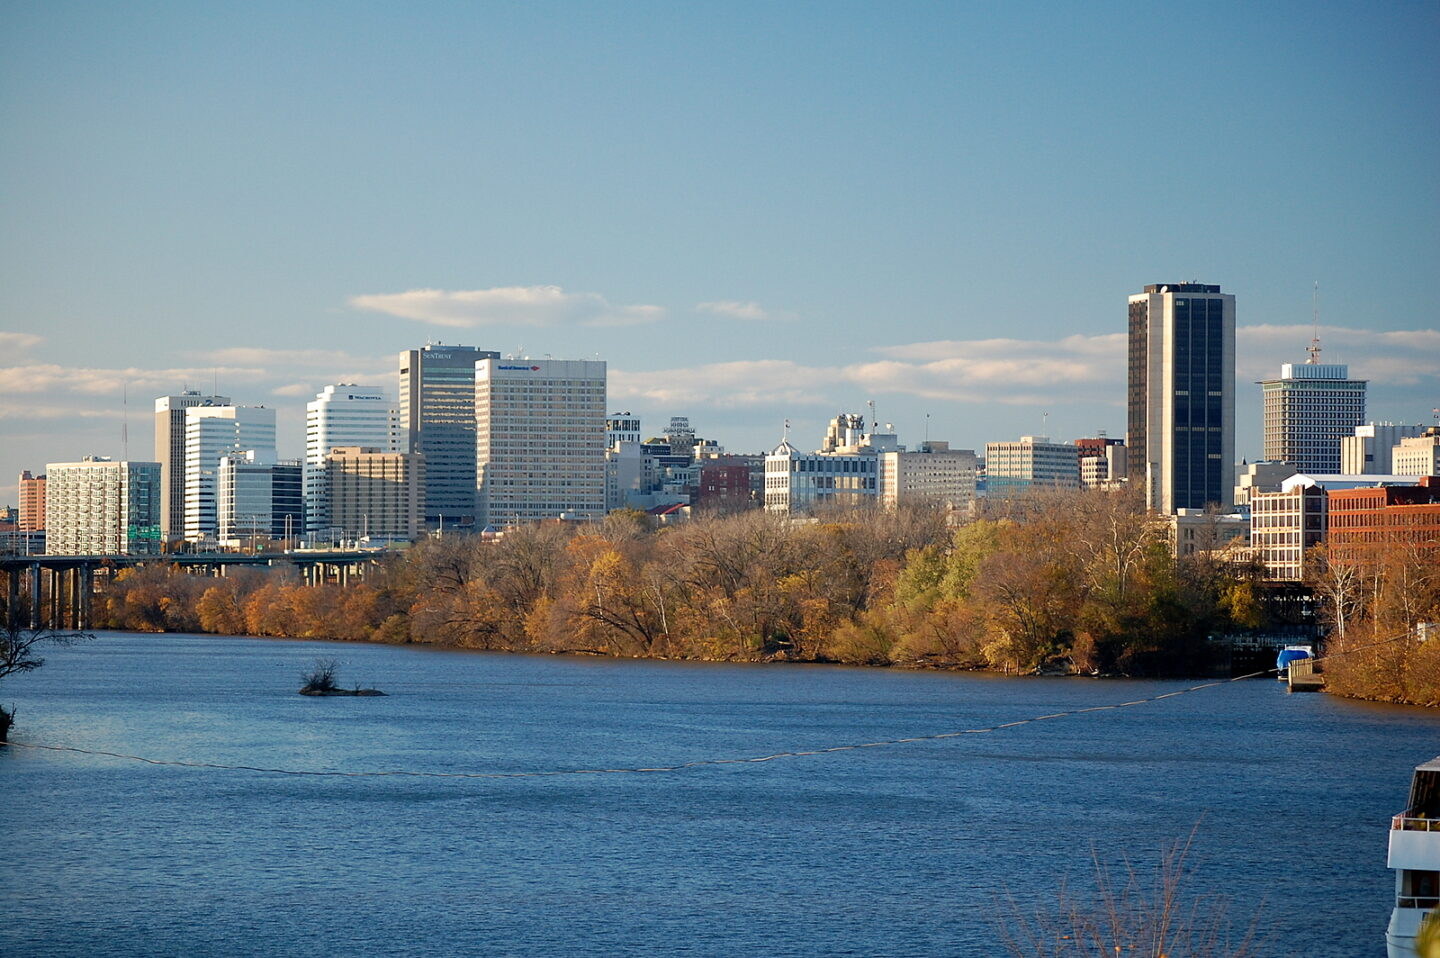 USA: Get Outside and See The Sights of Richmond, Virginia